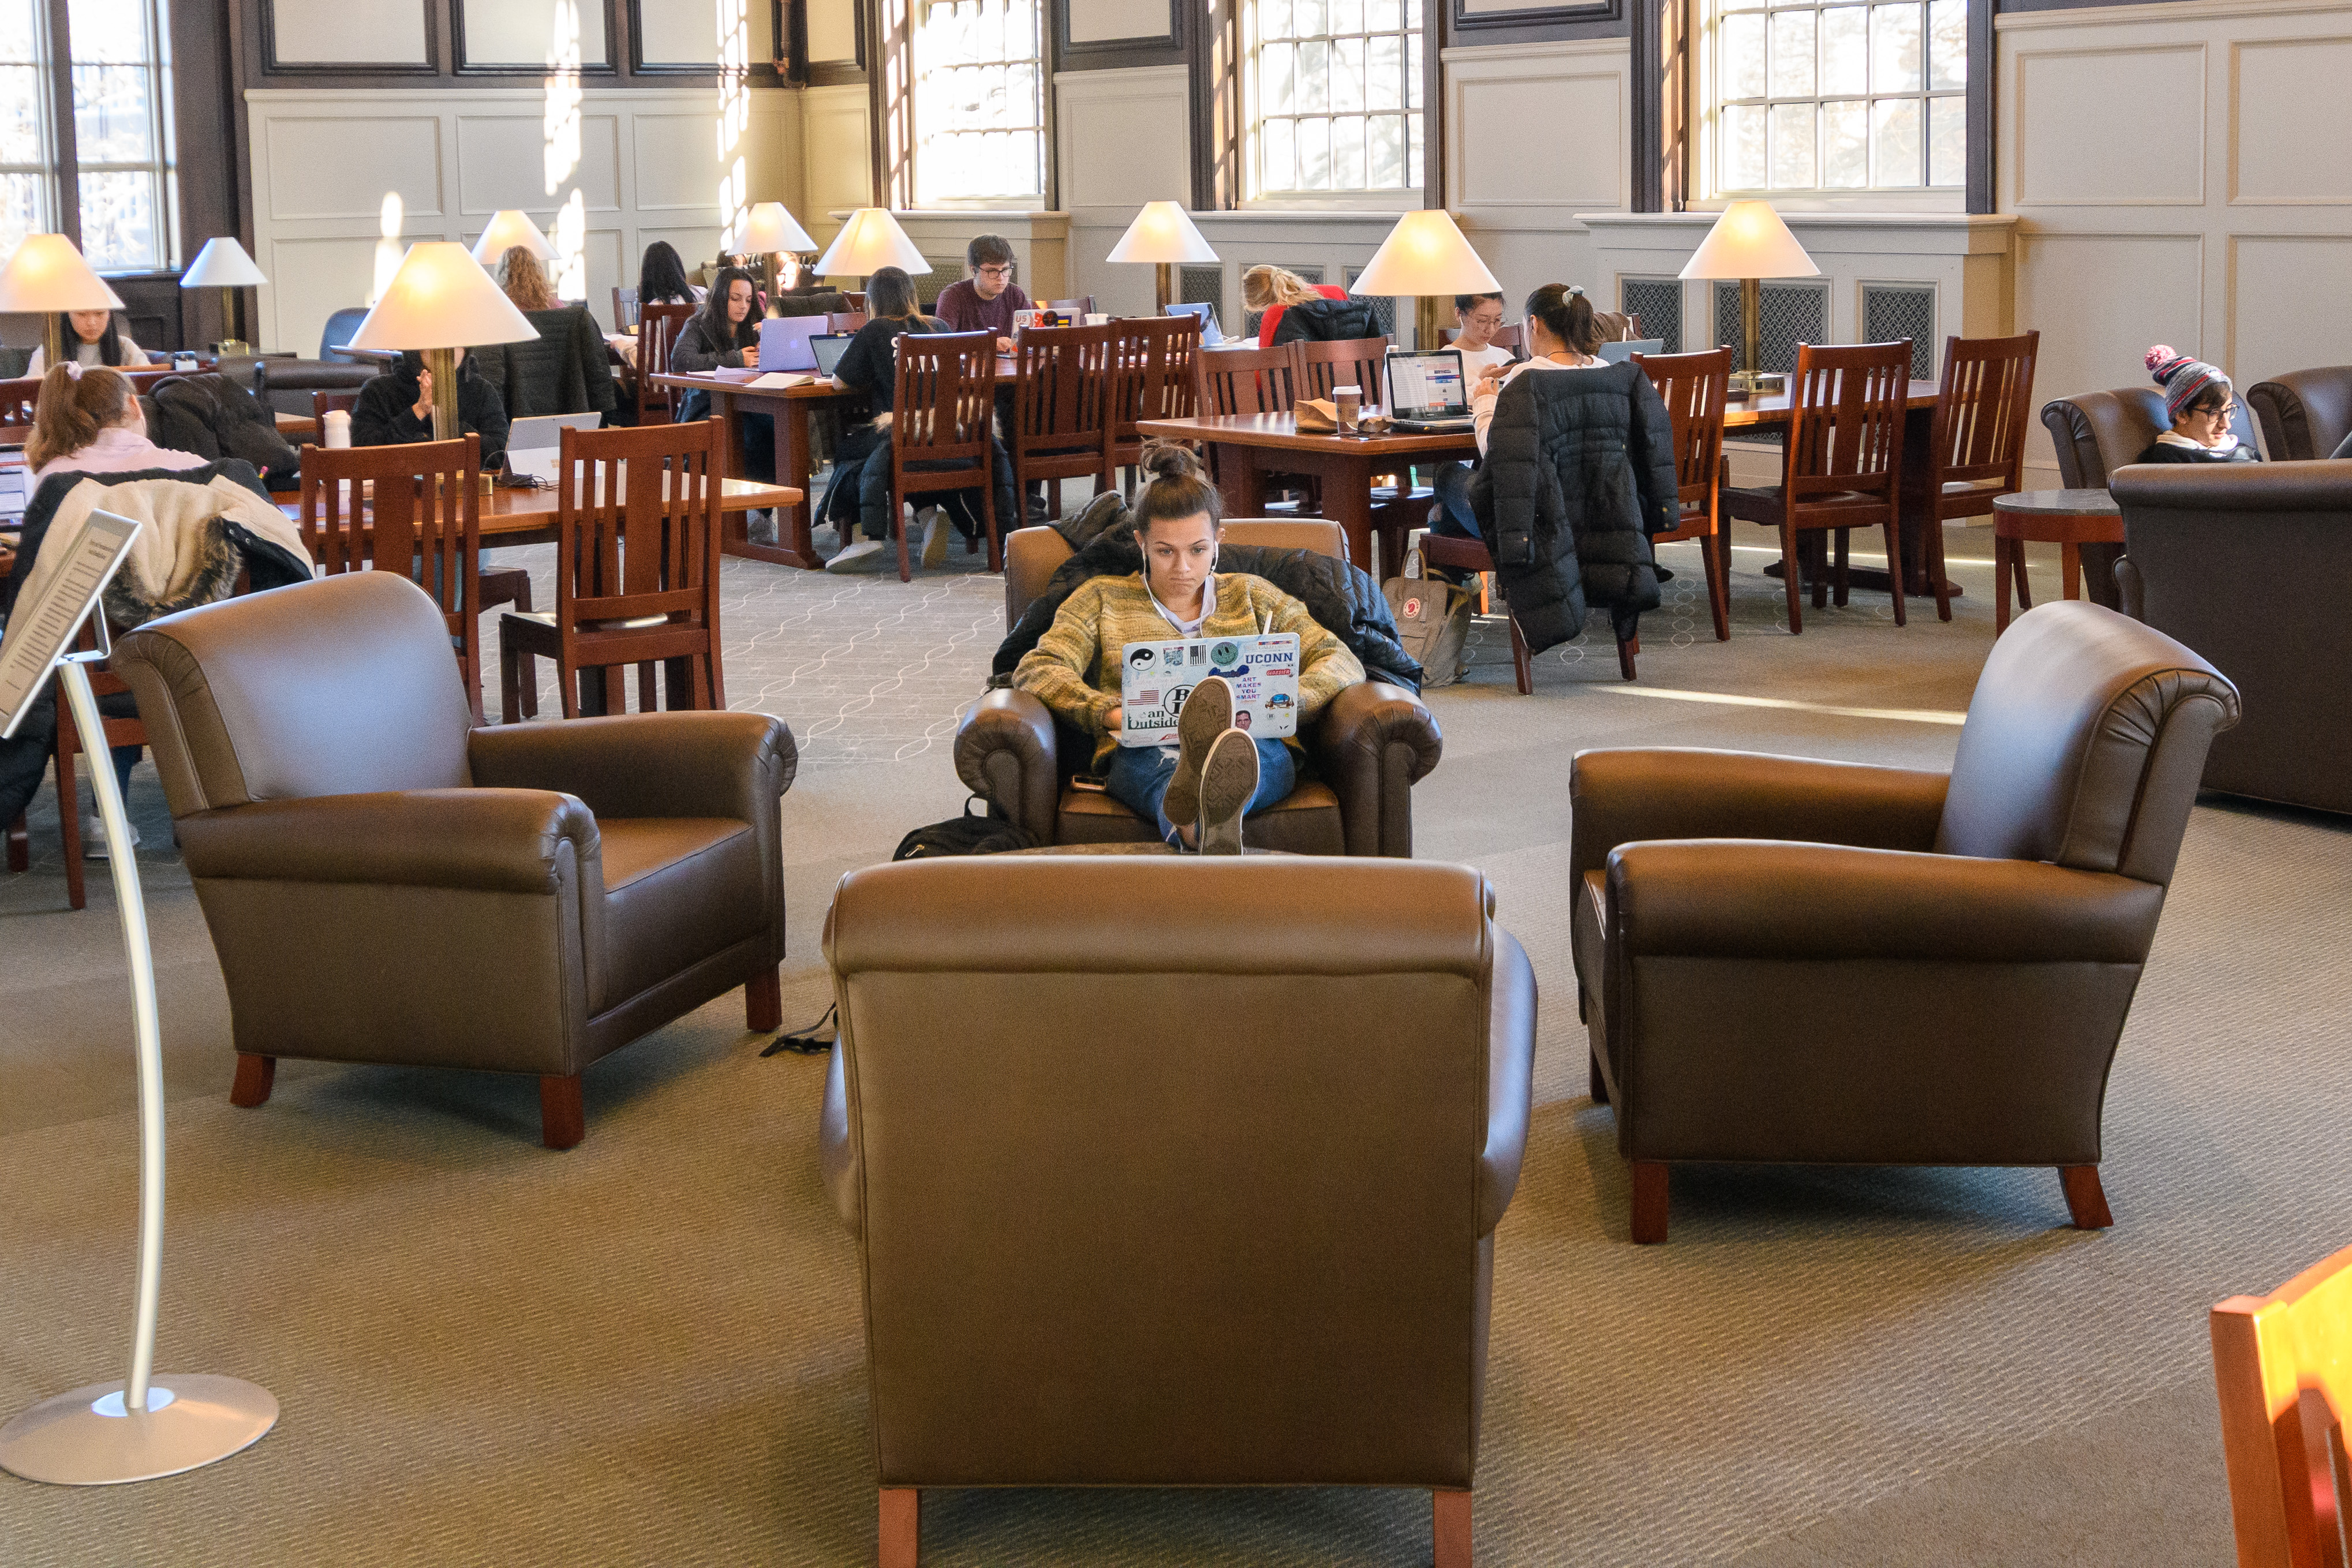 A student sits with her feet up while studying inthe Wilbur Cross South Reading Room.